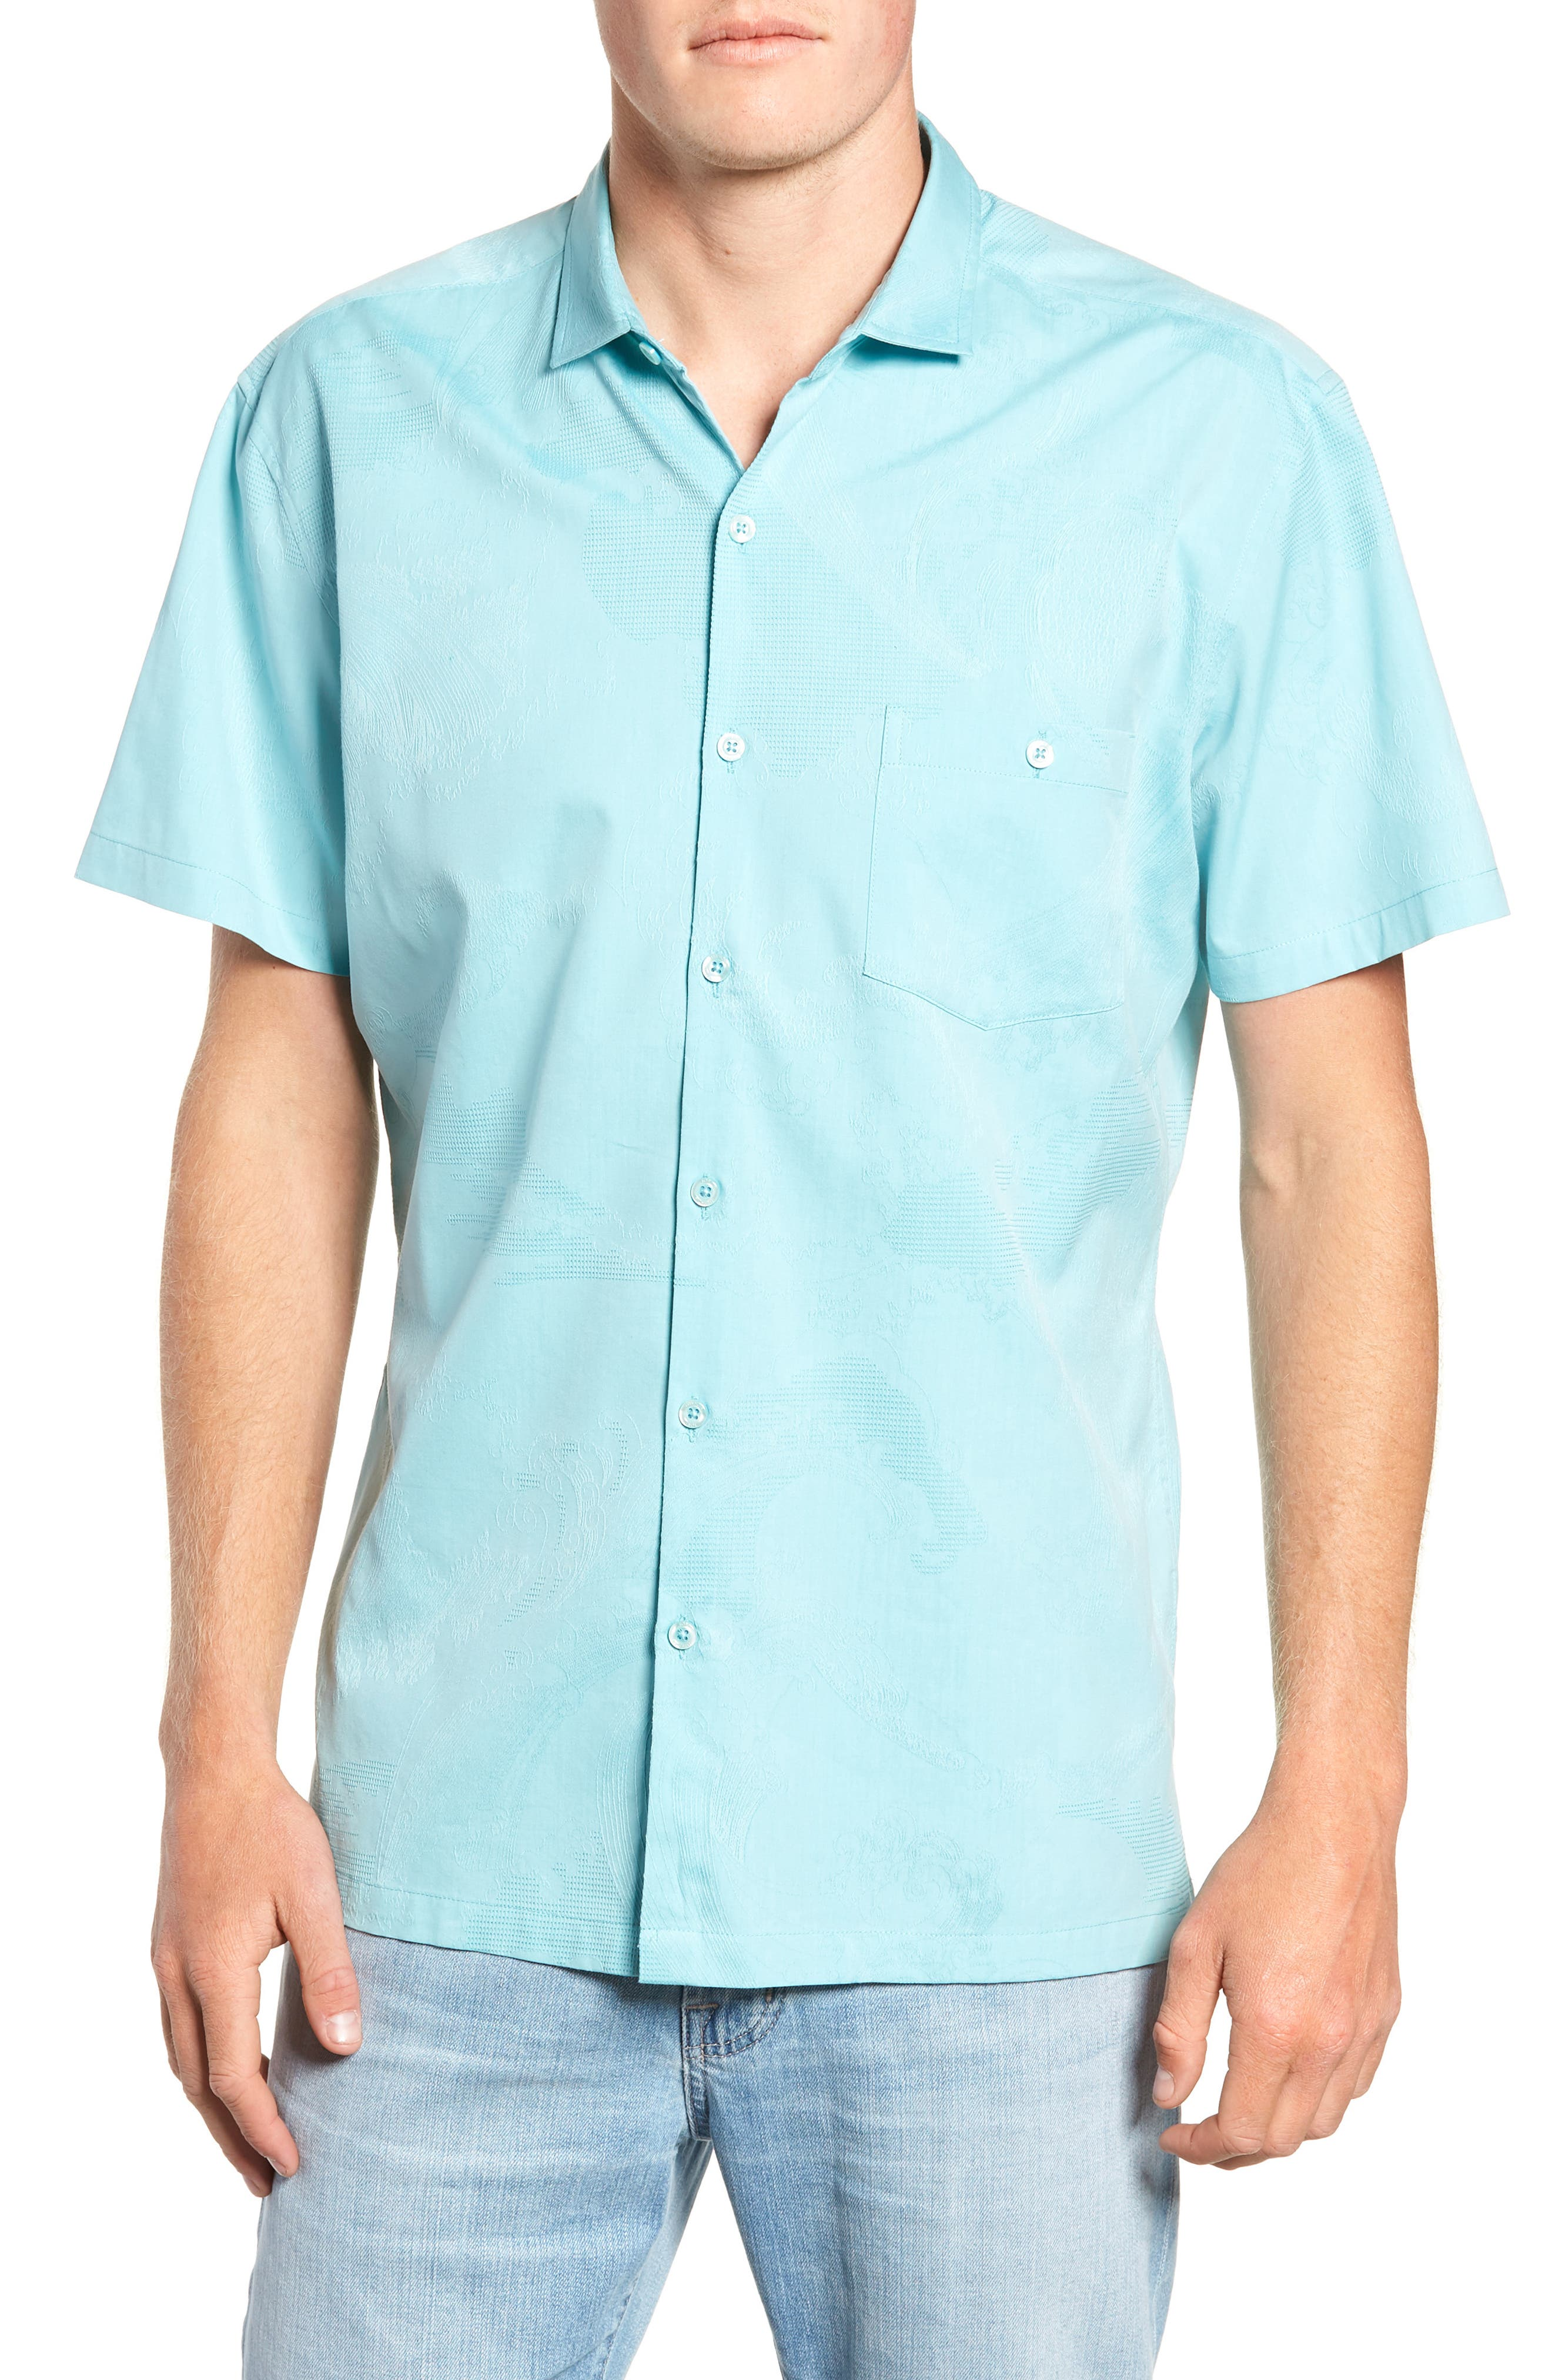 Seas the Day Trim Fit Camp Shirt,                             Main thumbnail 1, color,                             Surf